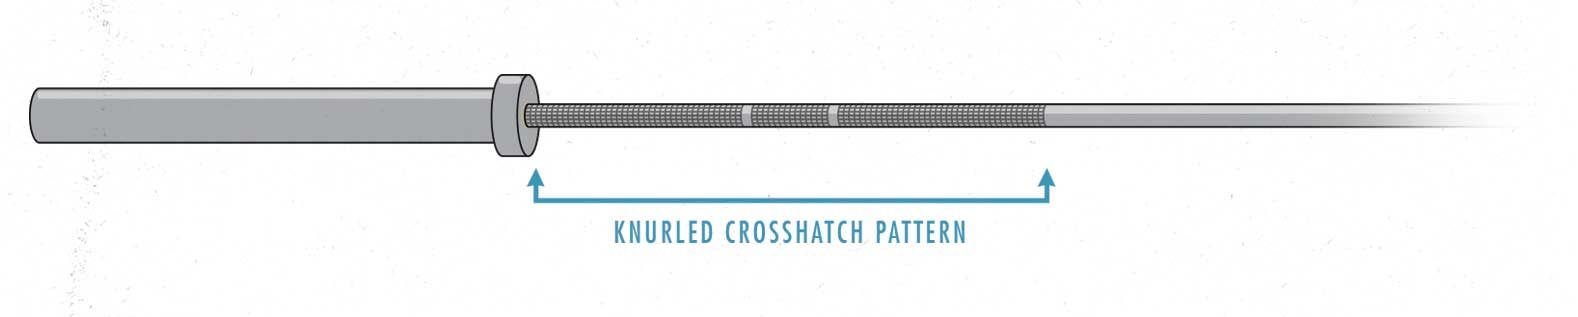 Illustration of the crosshatched knurling that's used to grip a barbell.